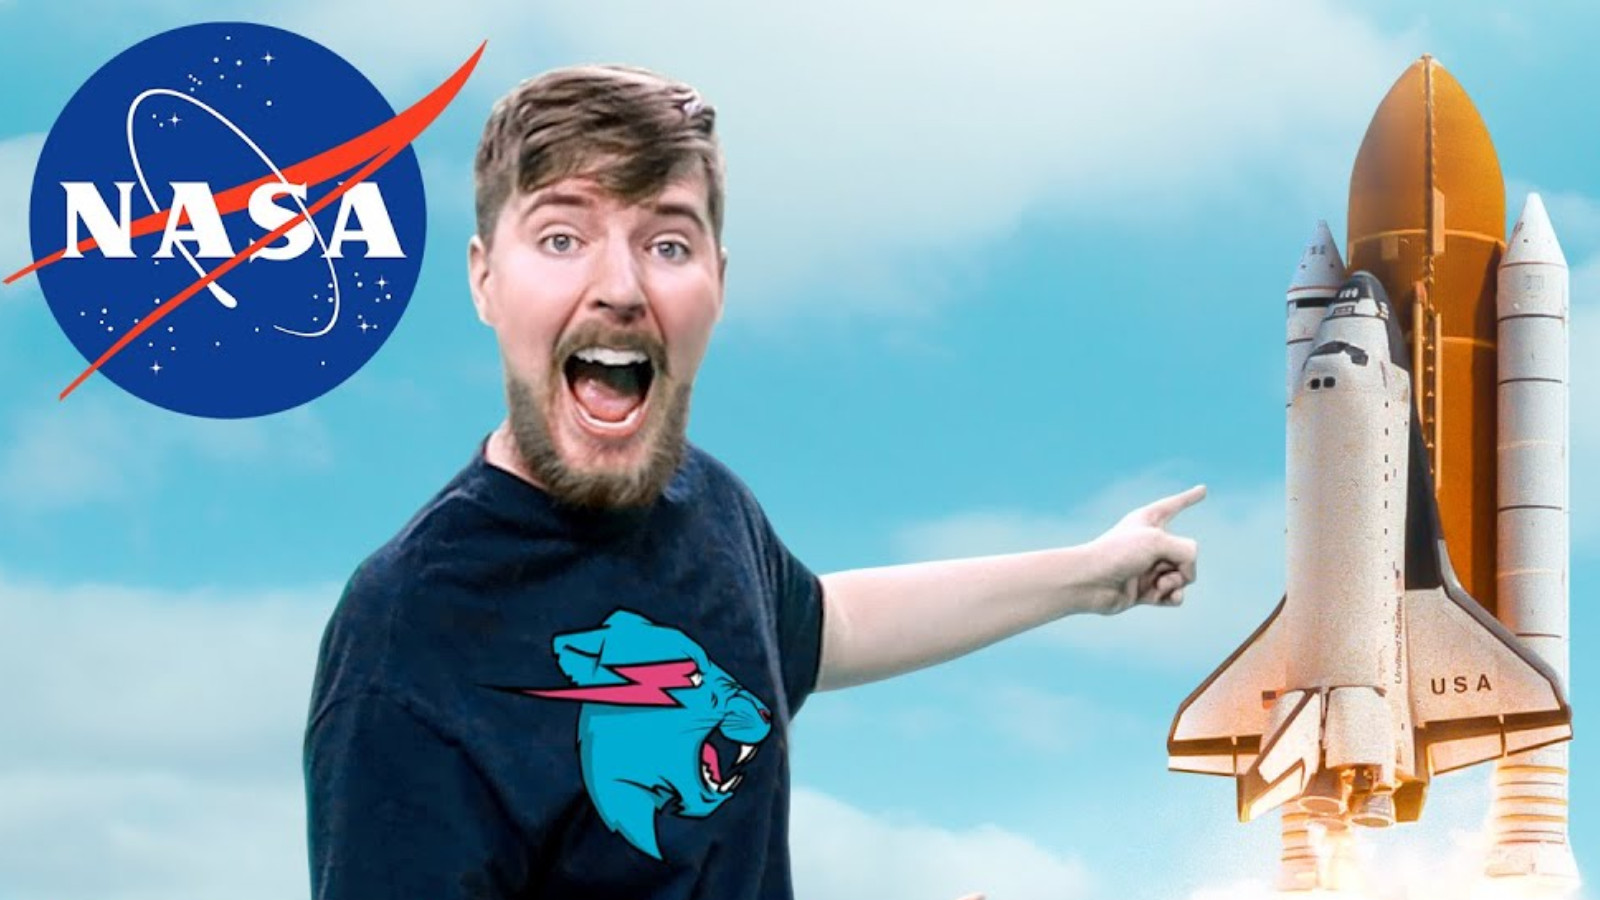 MrBeast points to NASA rocket